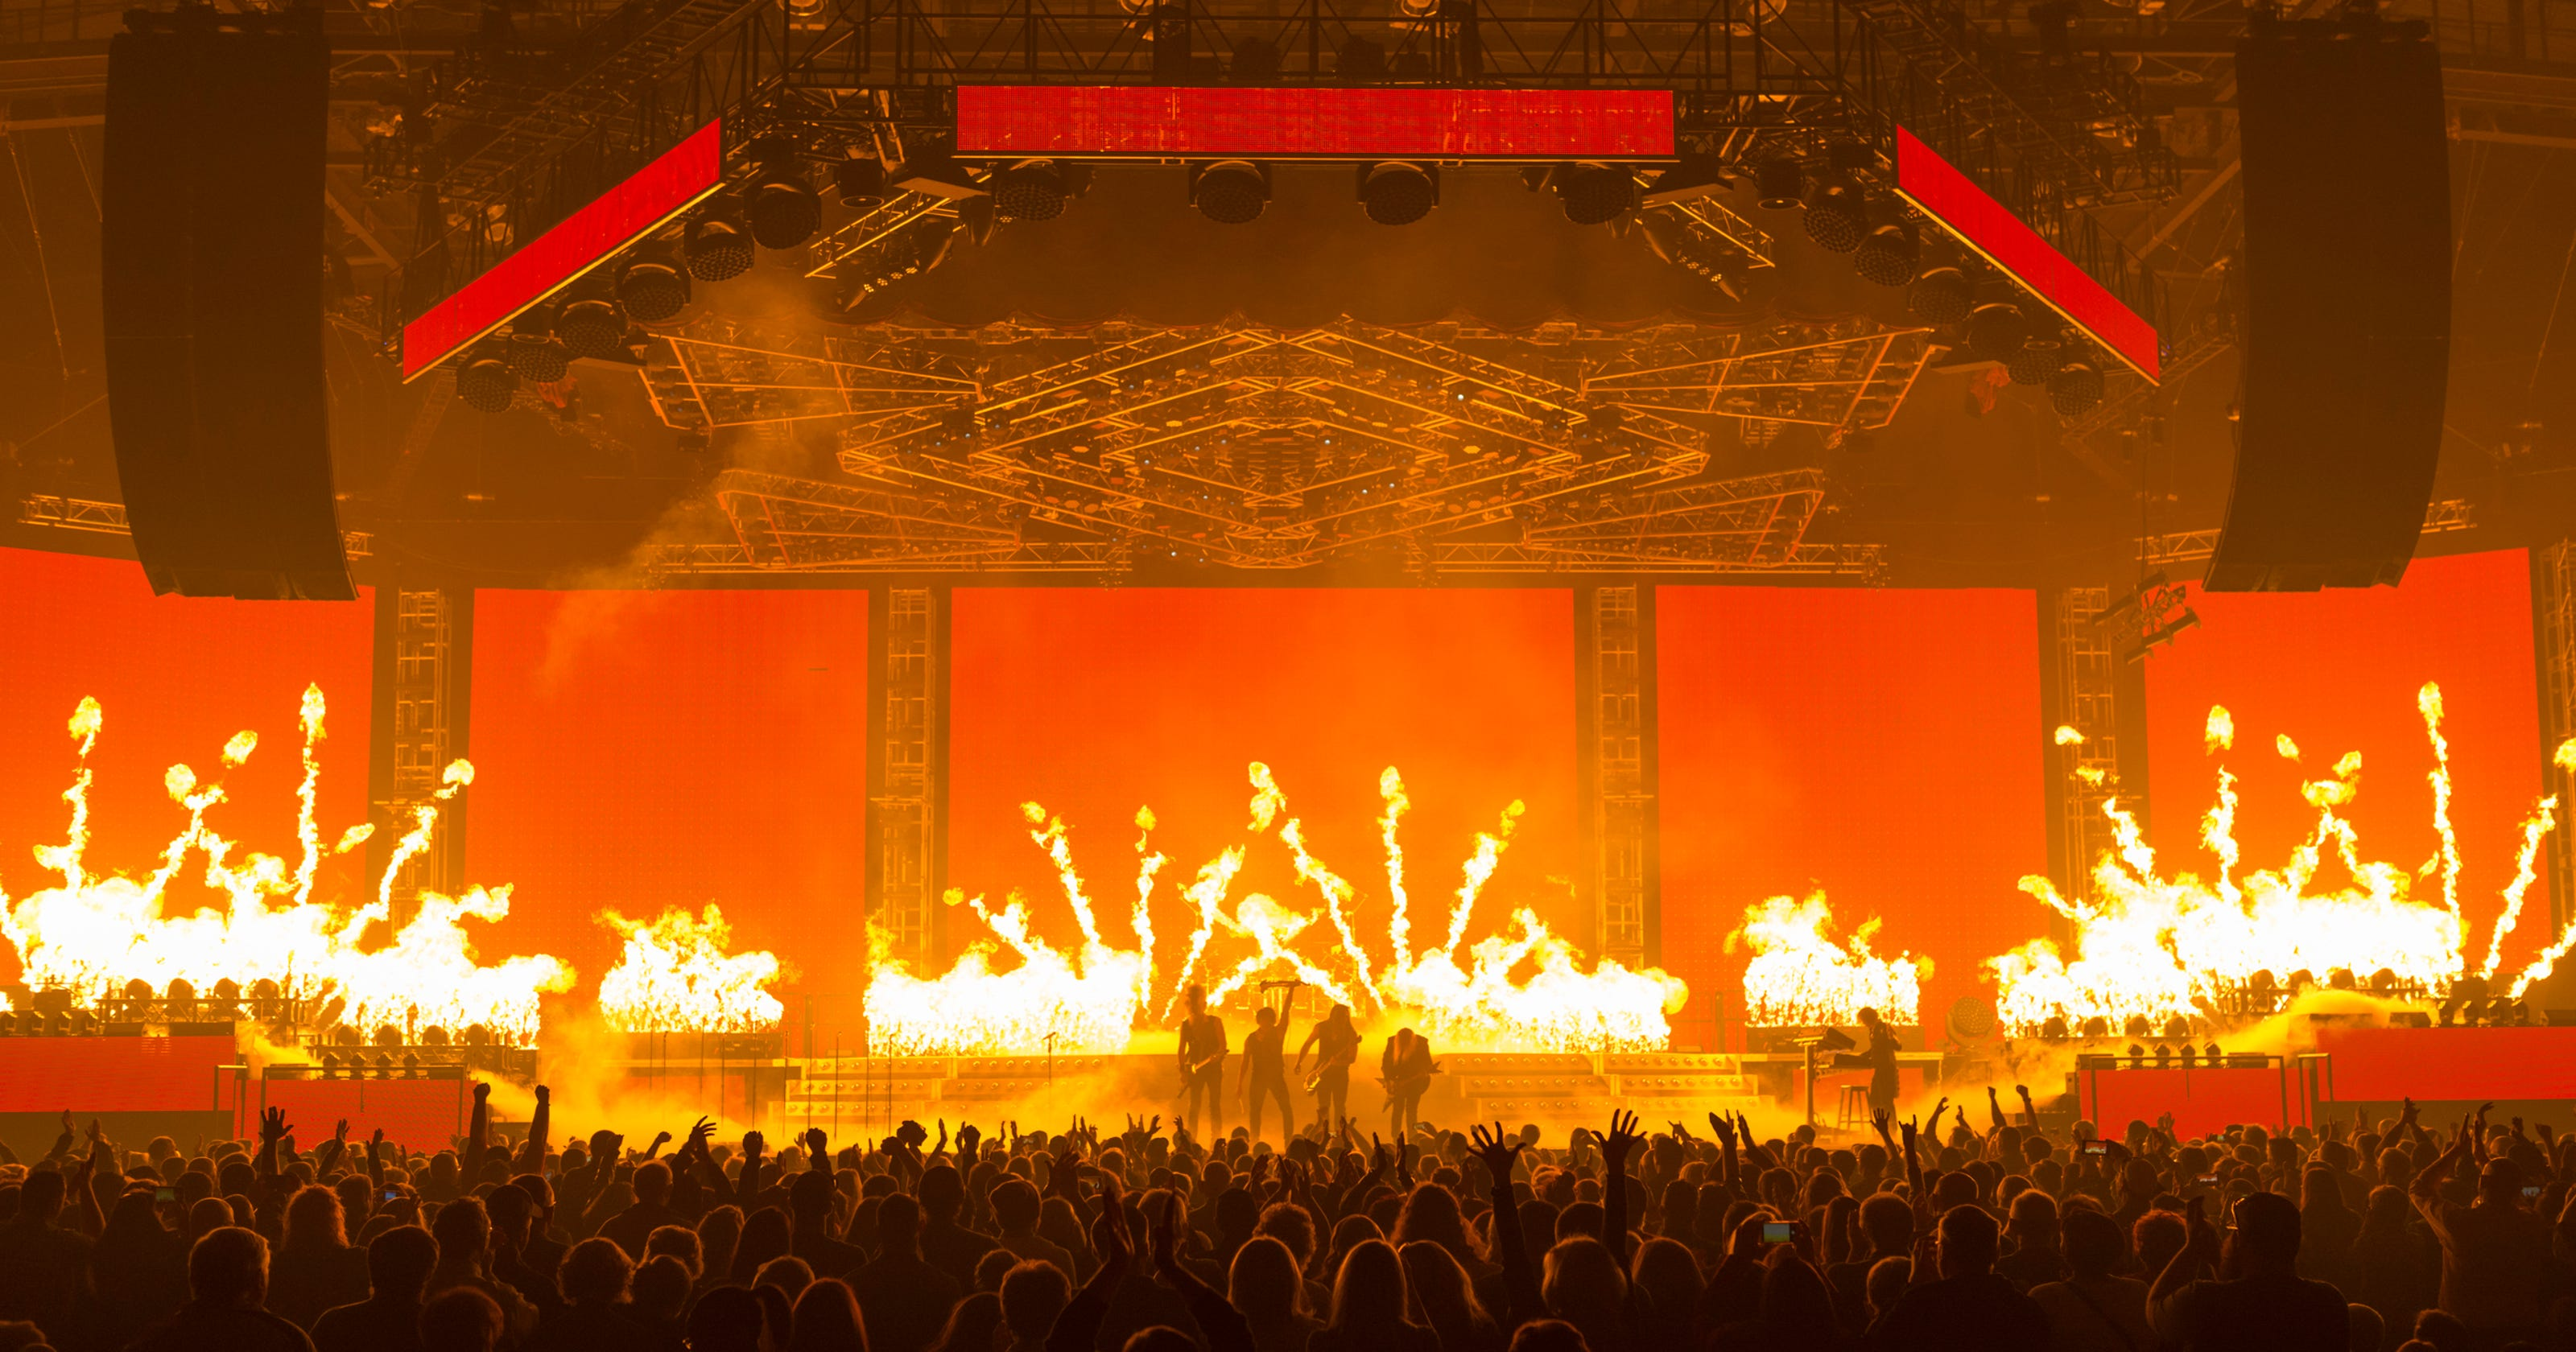 Trans-Siberian Orchestra to perform Knoxville concert on Dec. 7